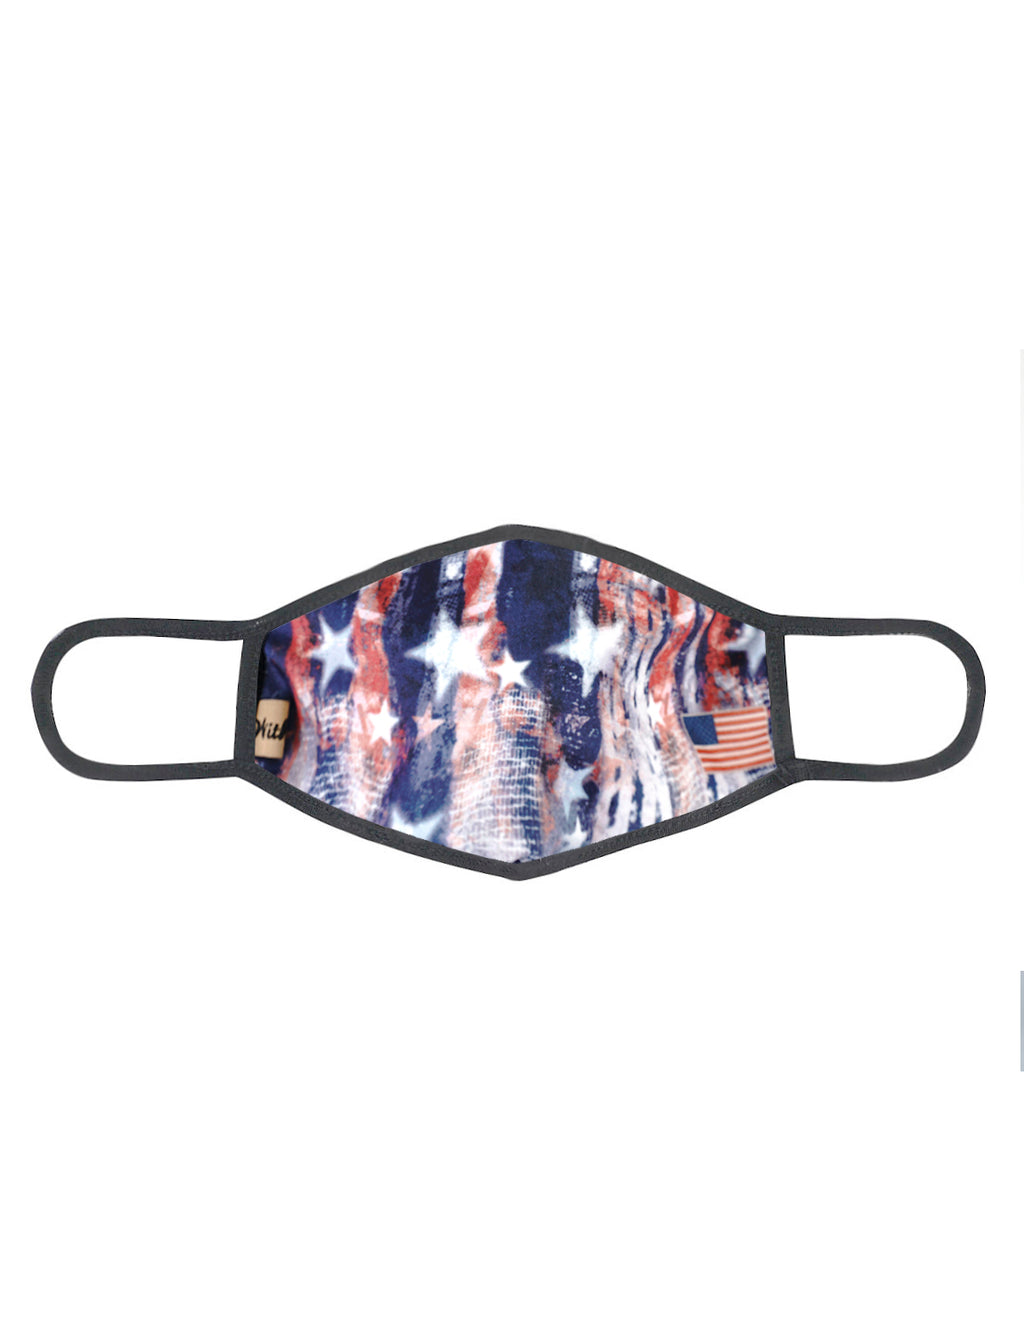 urban x apparel, urban x clothing, urbanxapparel, urbanxclothing, wholesale, women clothing, bohemian, free people, free spirit, young contemporary, fashion trend, fashion style, fashion 2019,RETAIL, White blue star strips print Washable and Reusable Face Mask, URBAN X APPAREL